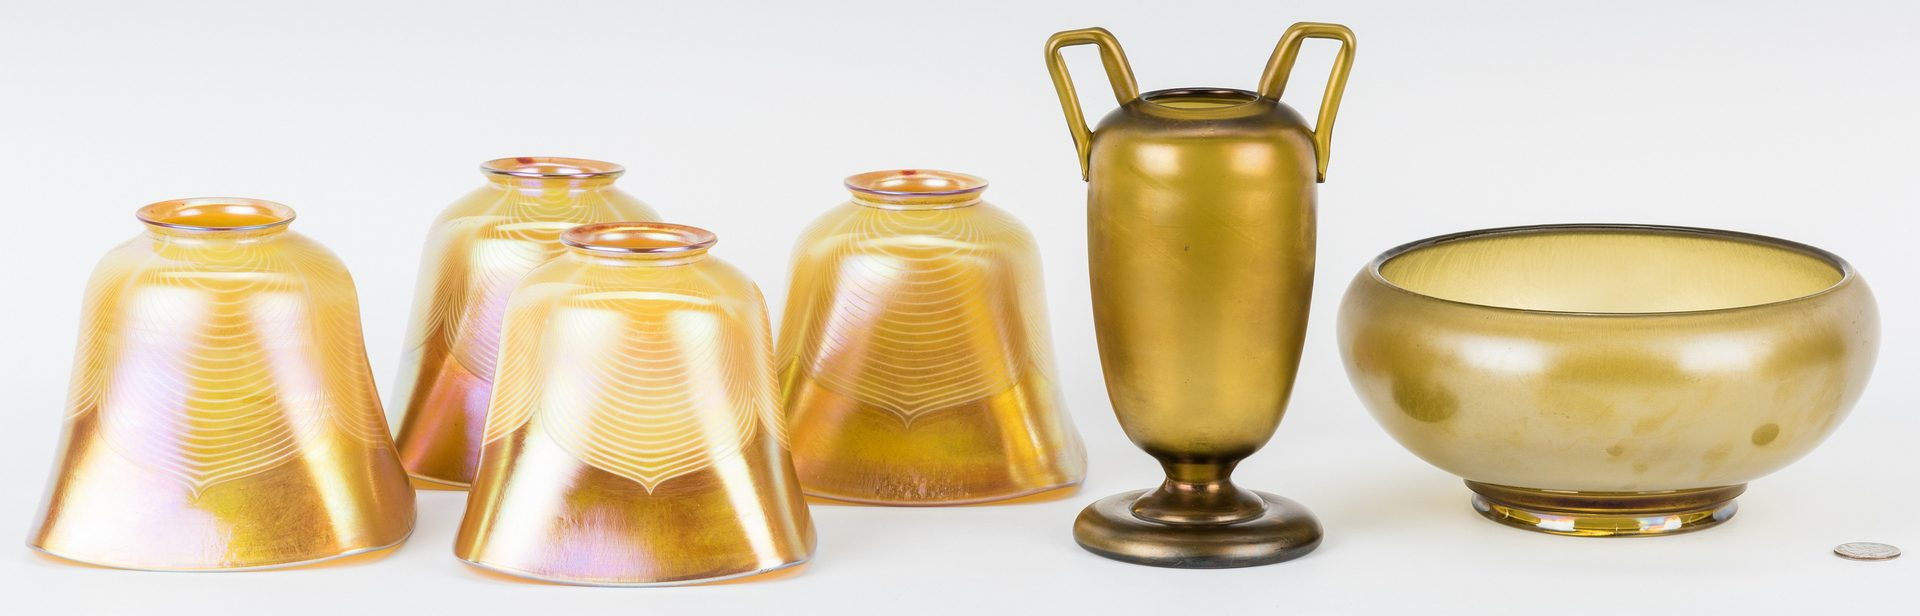 Lot 194: 7 Art Glass Items, incl. Lamp, Shades, Bowl & Vase